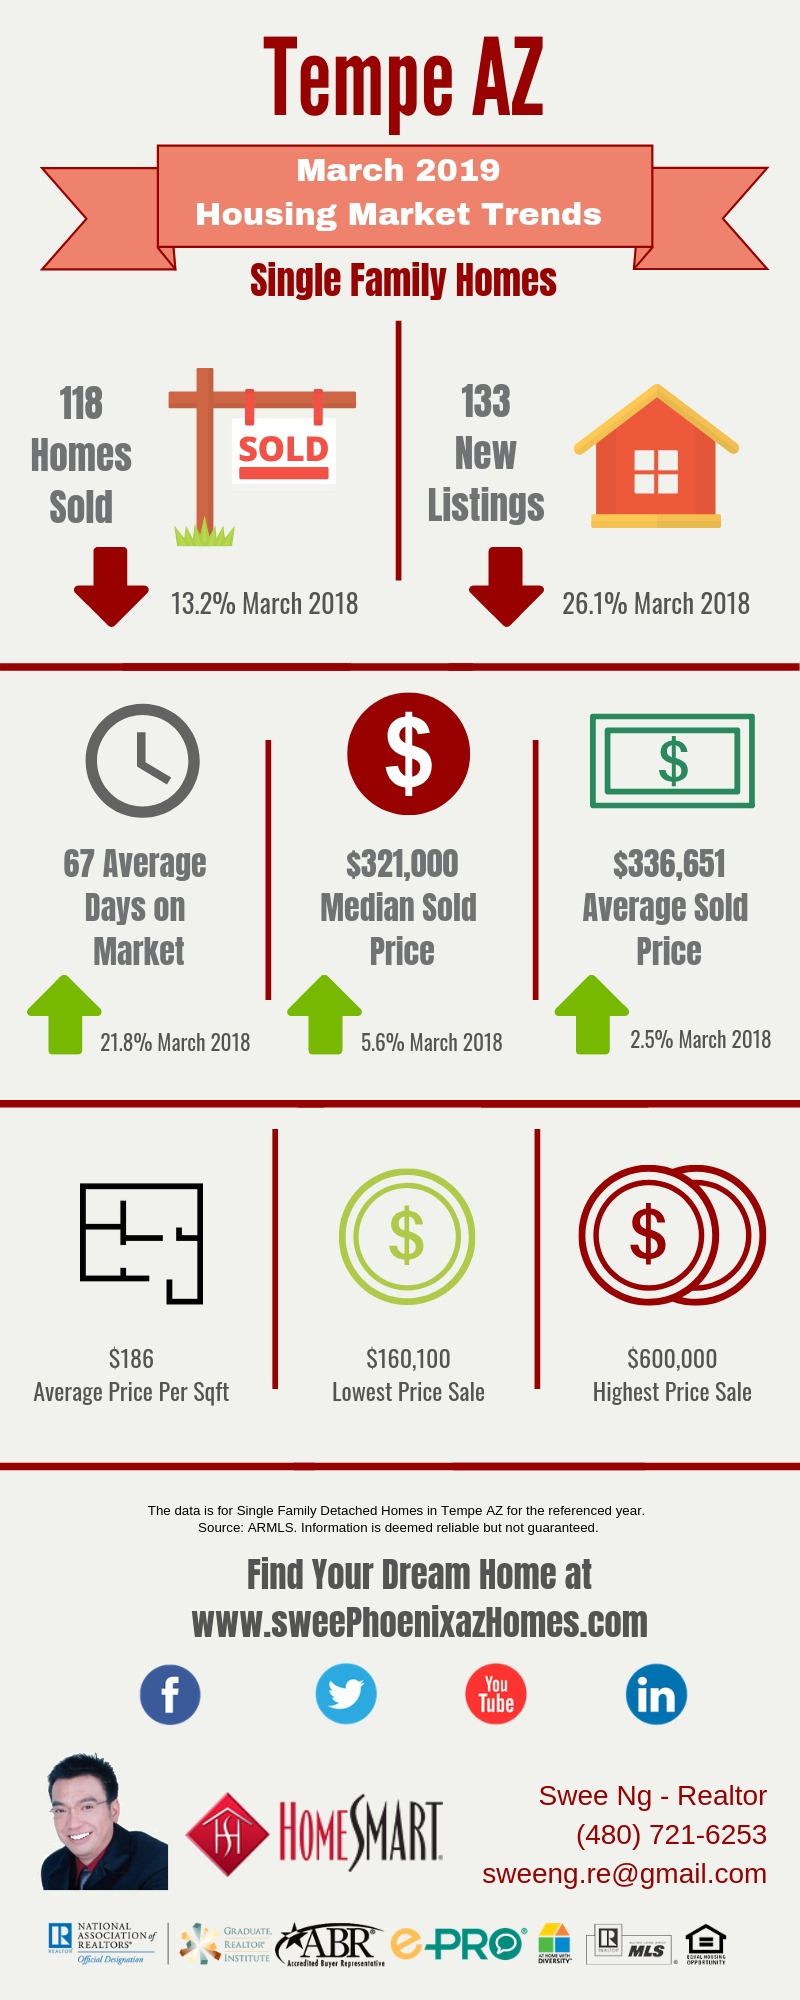 March 2019 Tempe AZ Housing Market Update by Swee Ng, Real Estate and House Value